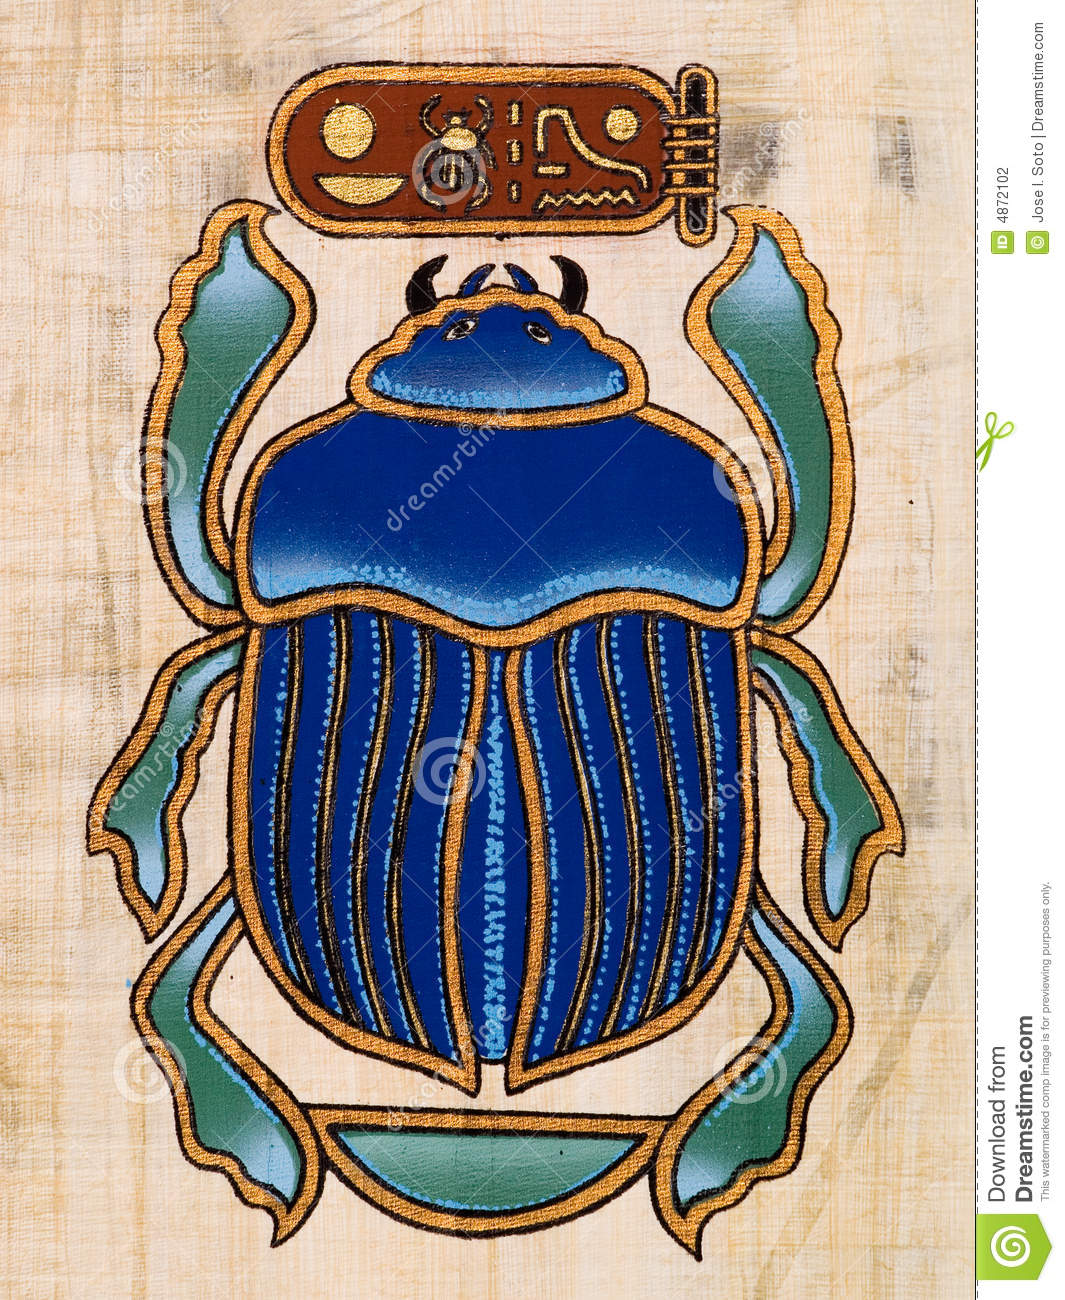 egyptian symbols of royalty - photo #26